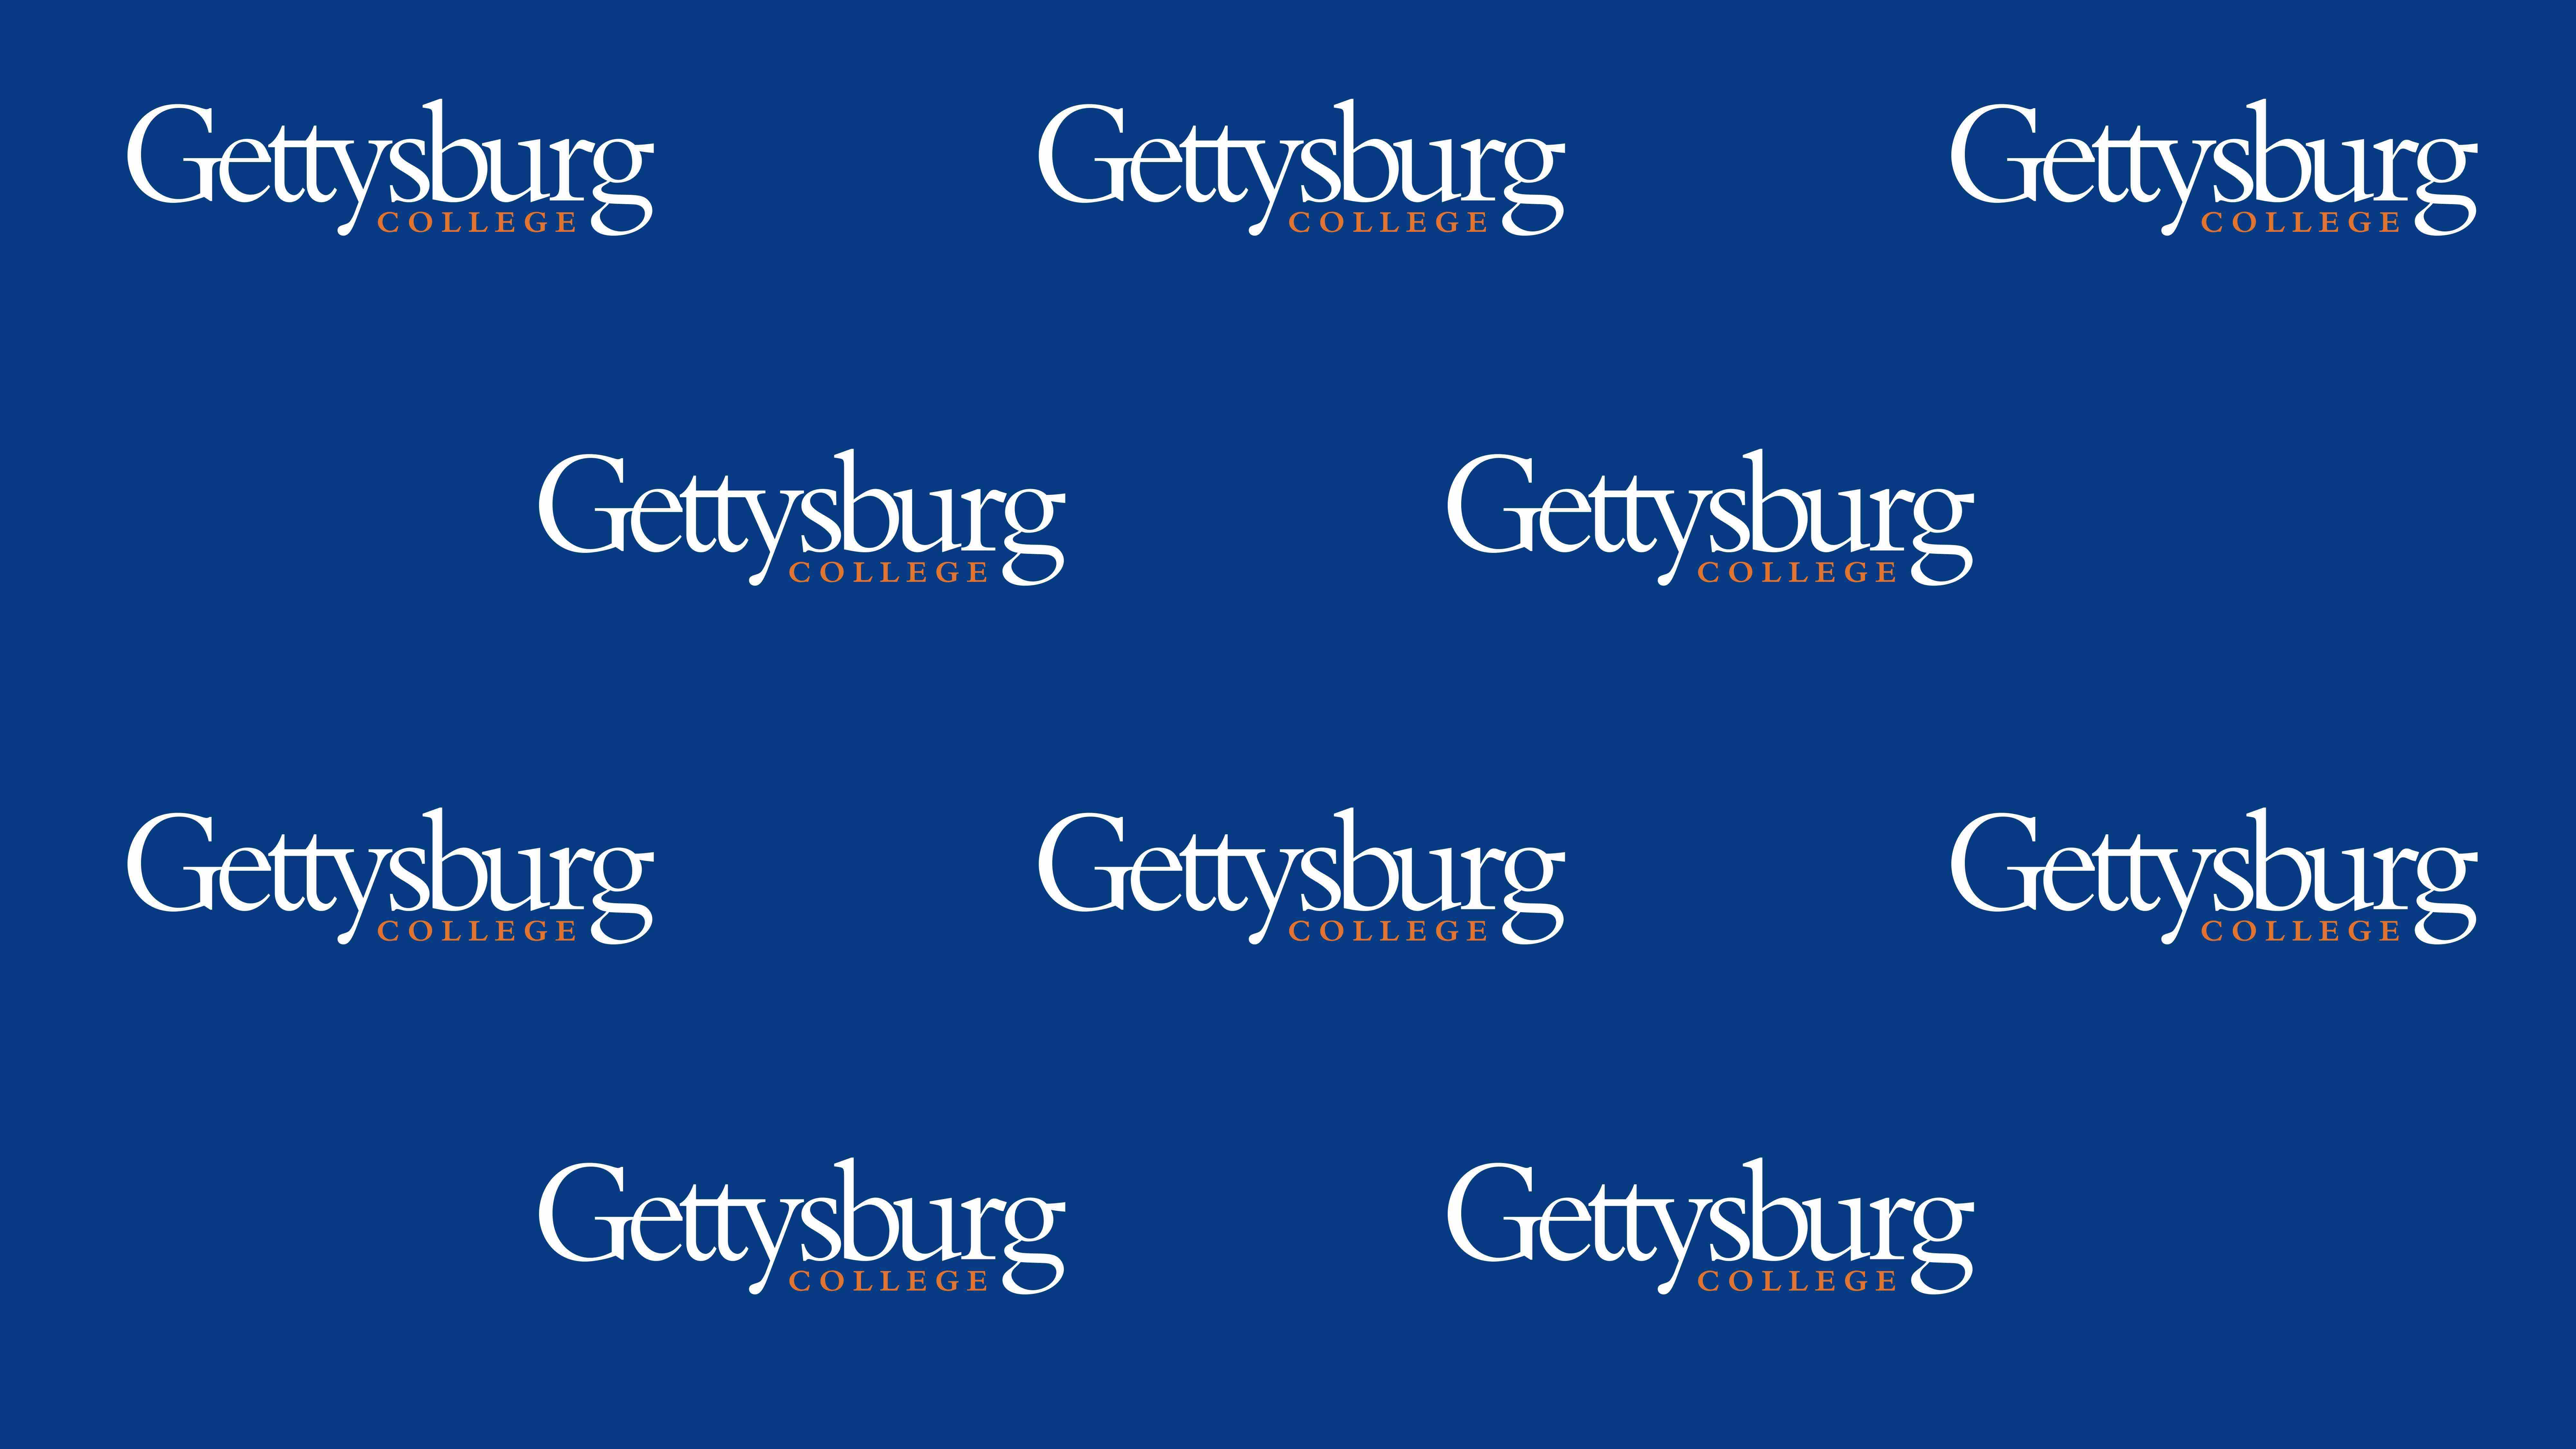 Gettysburg College branded zoom background